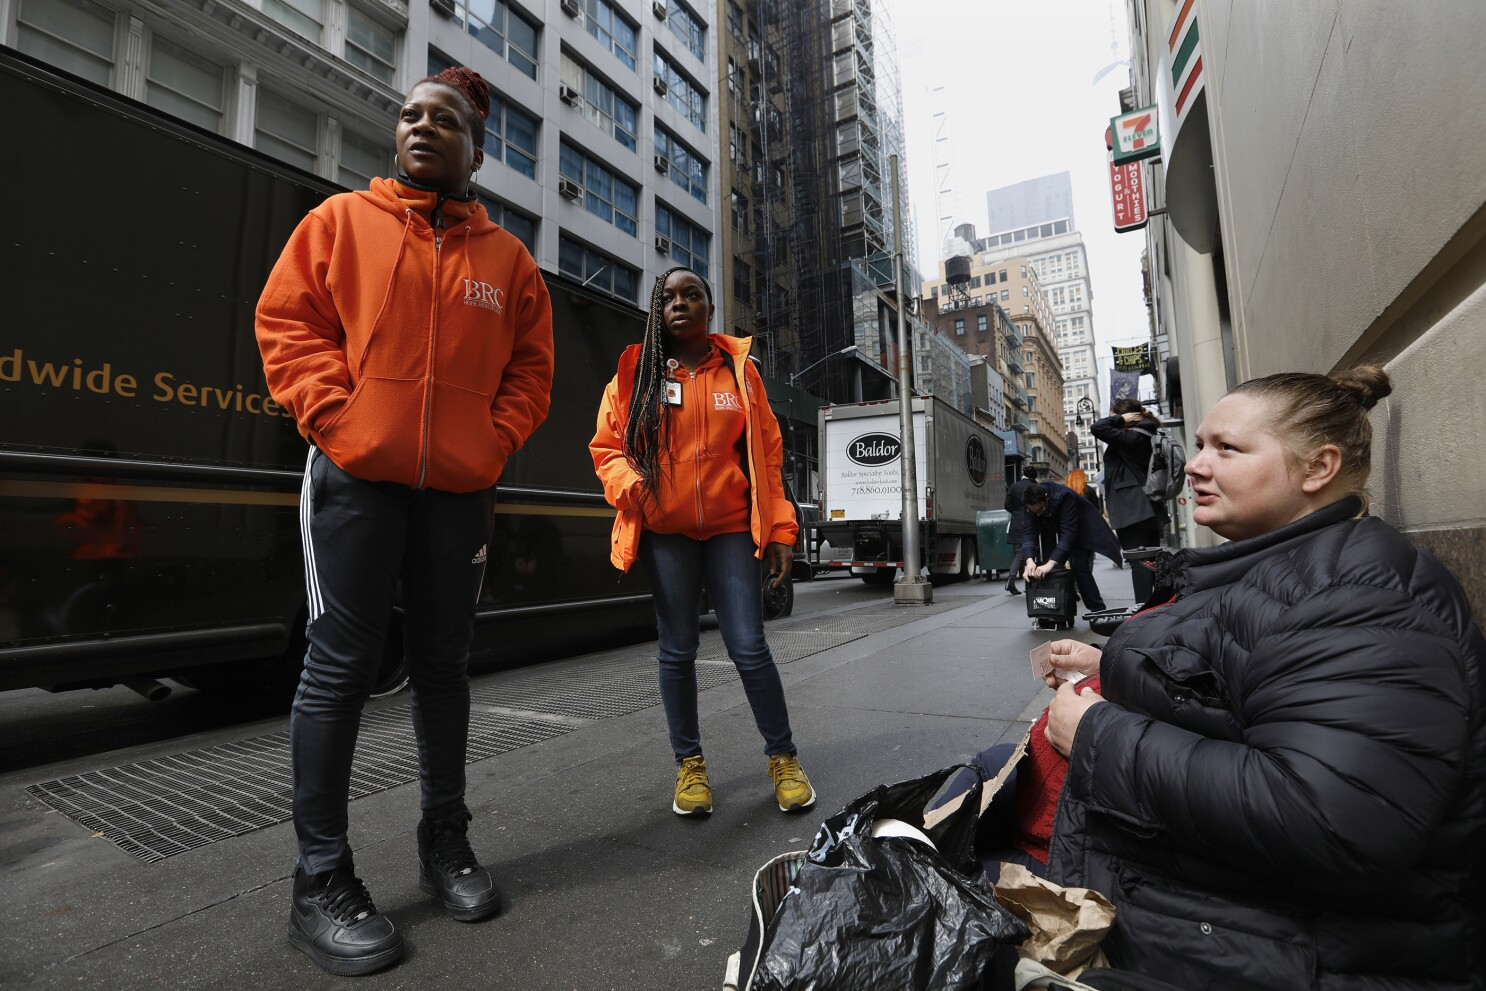 Desperate to ease homelessness, California officials look to New York 'right to shelter' laws